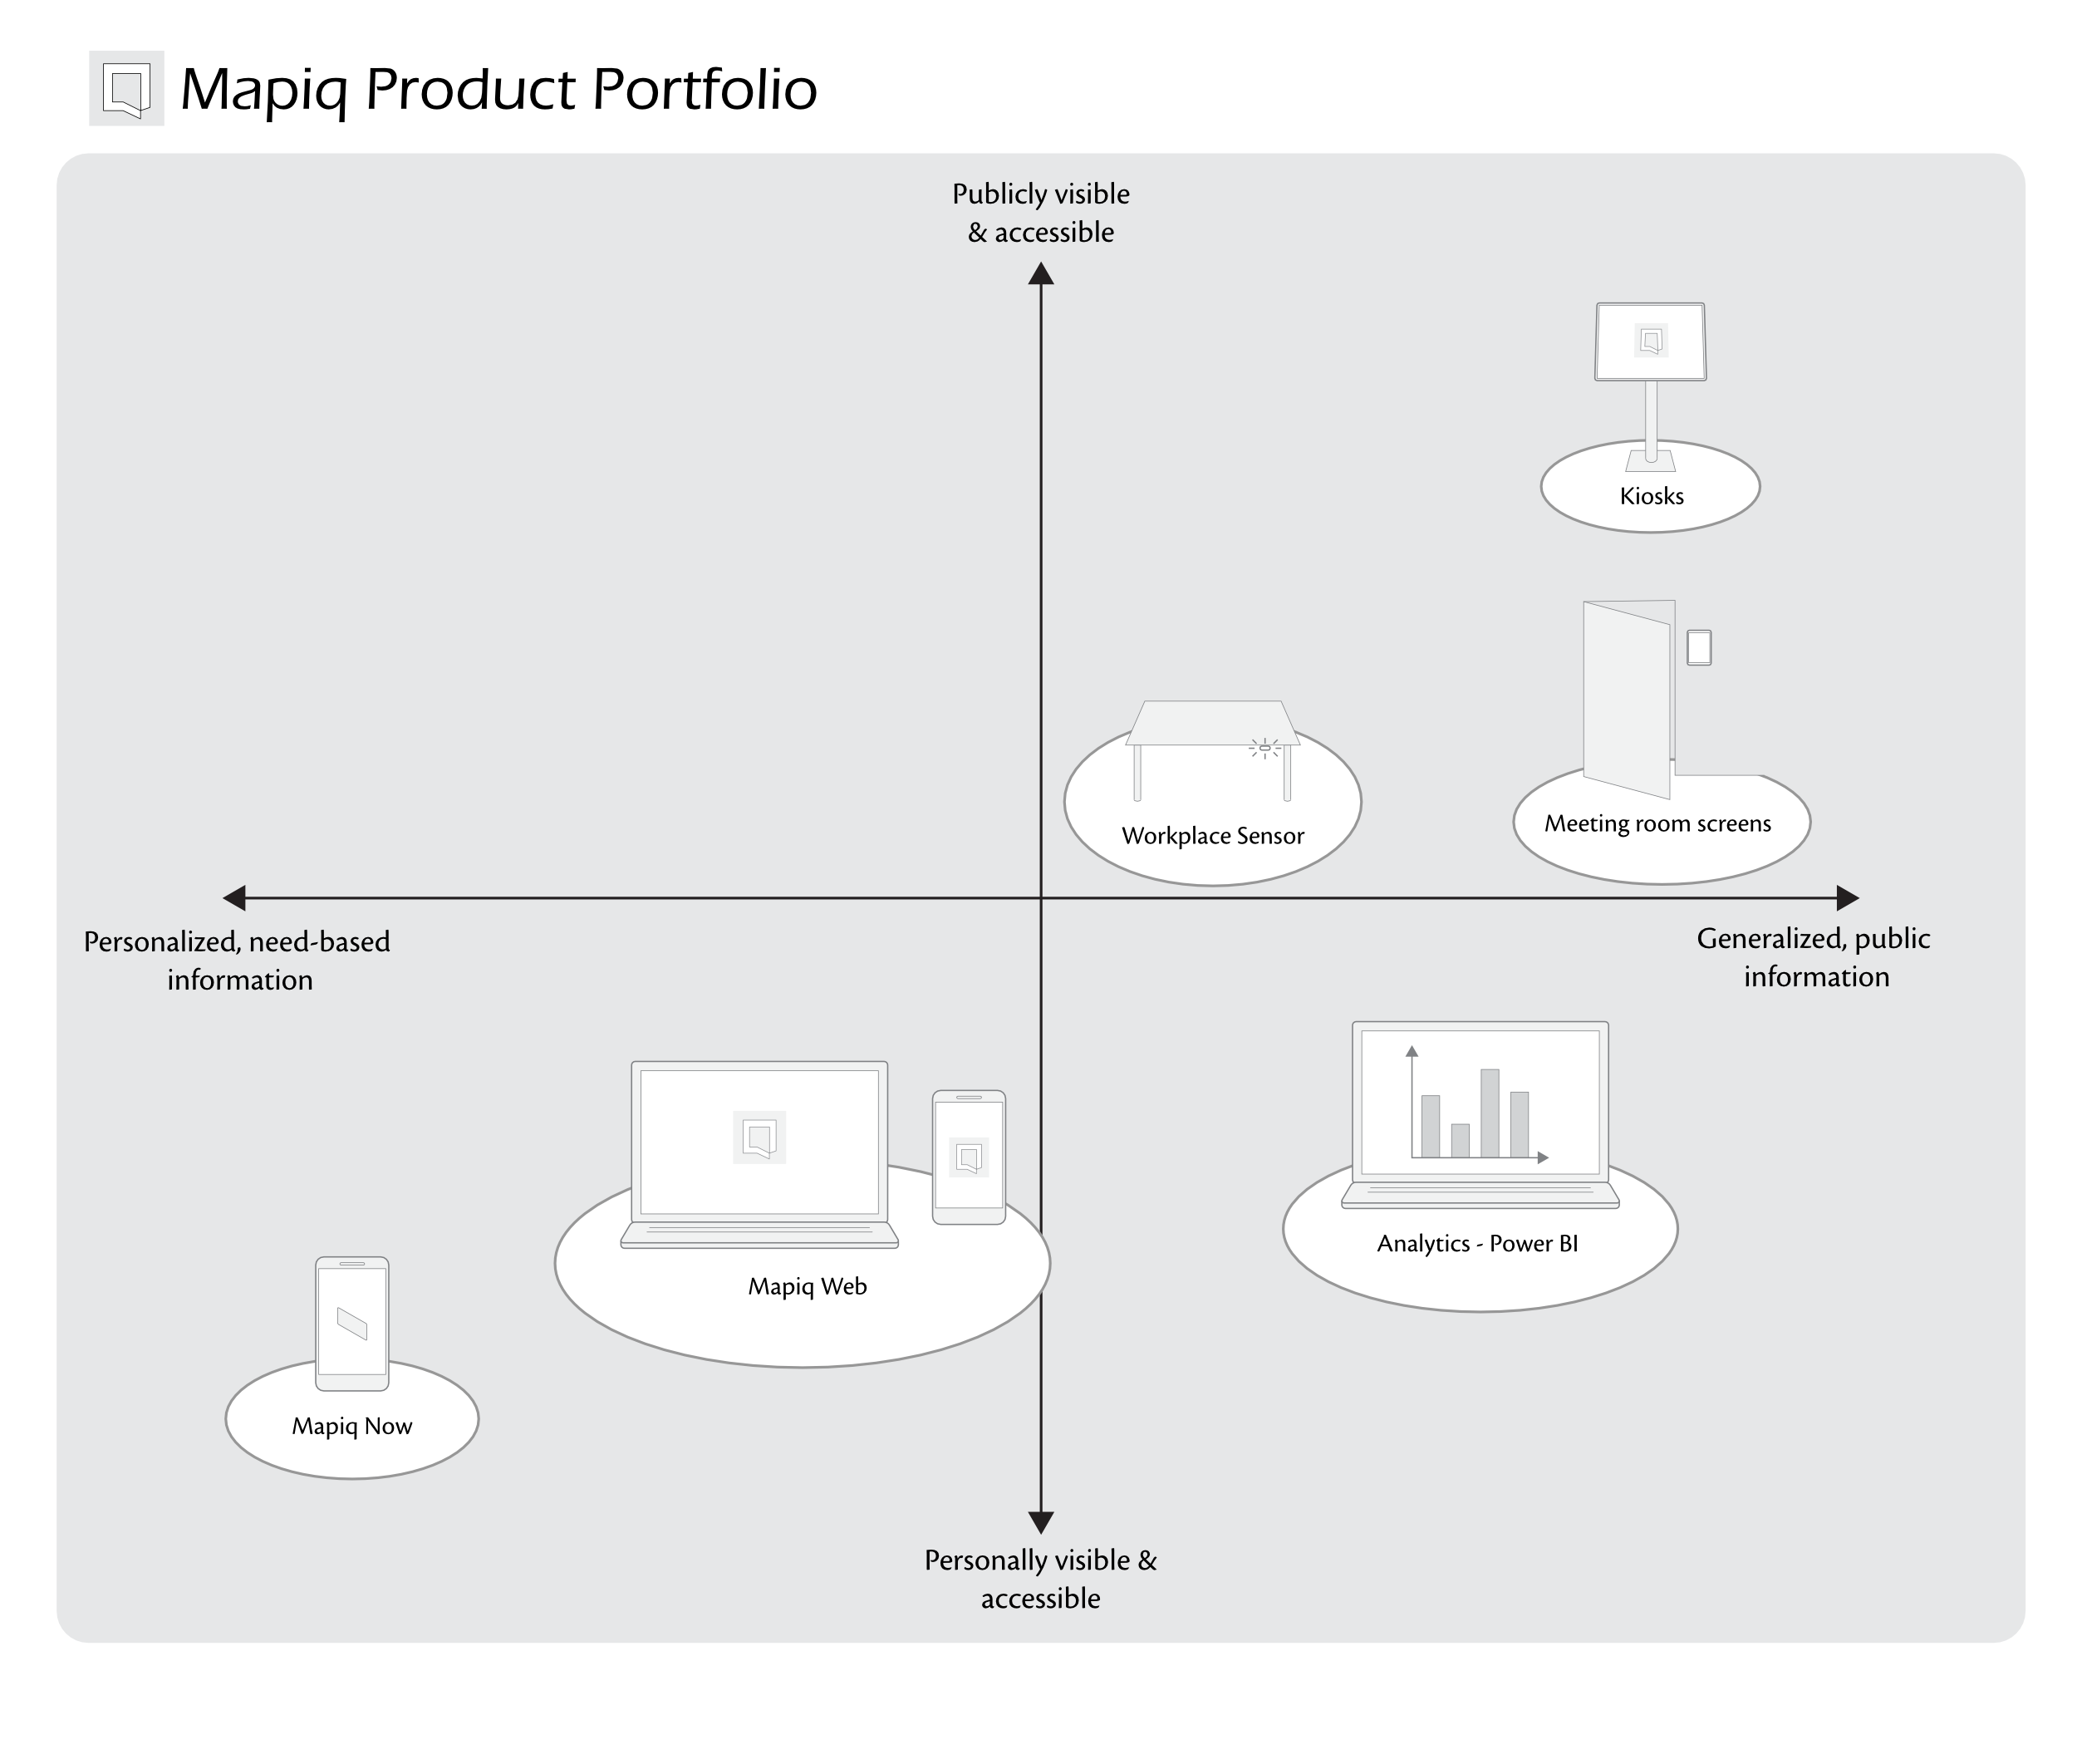 At time of analysis, Mapiq offers a range of products with varying degrees of personalized information and public visibility.